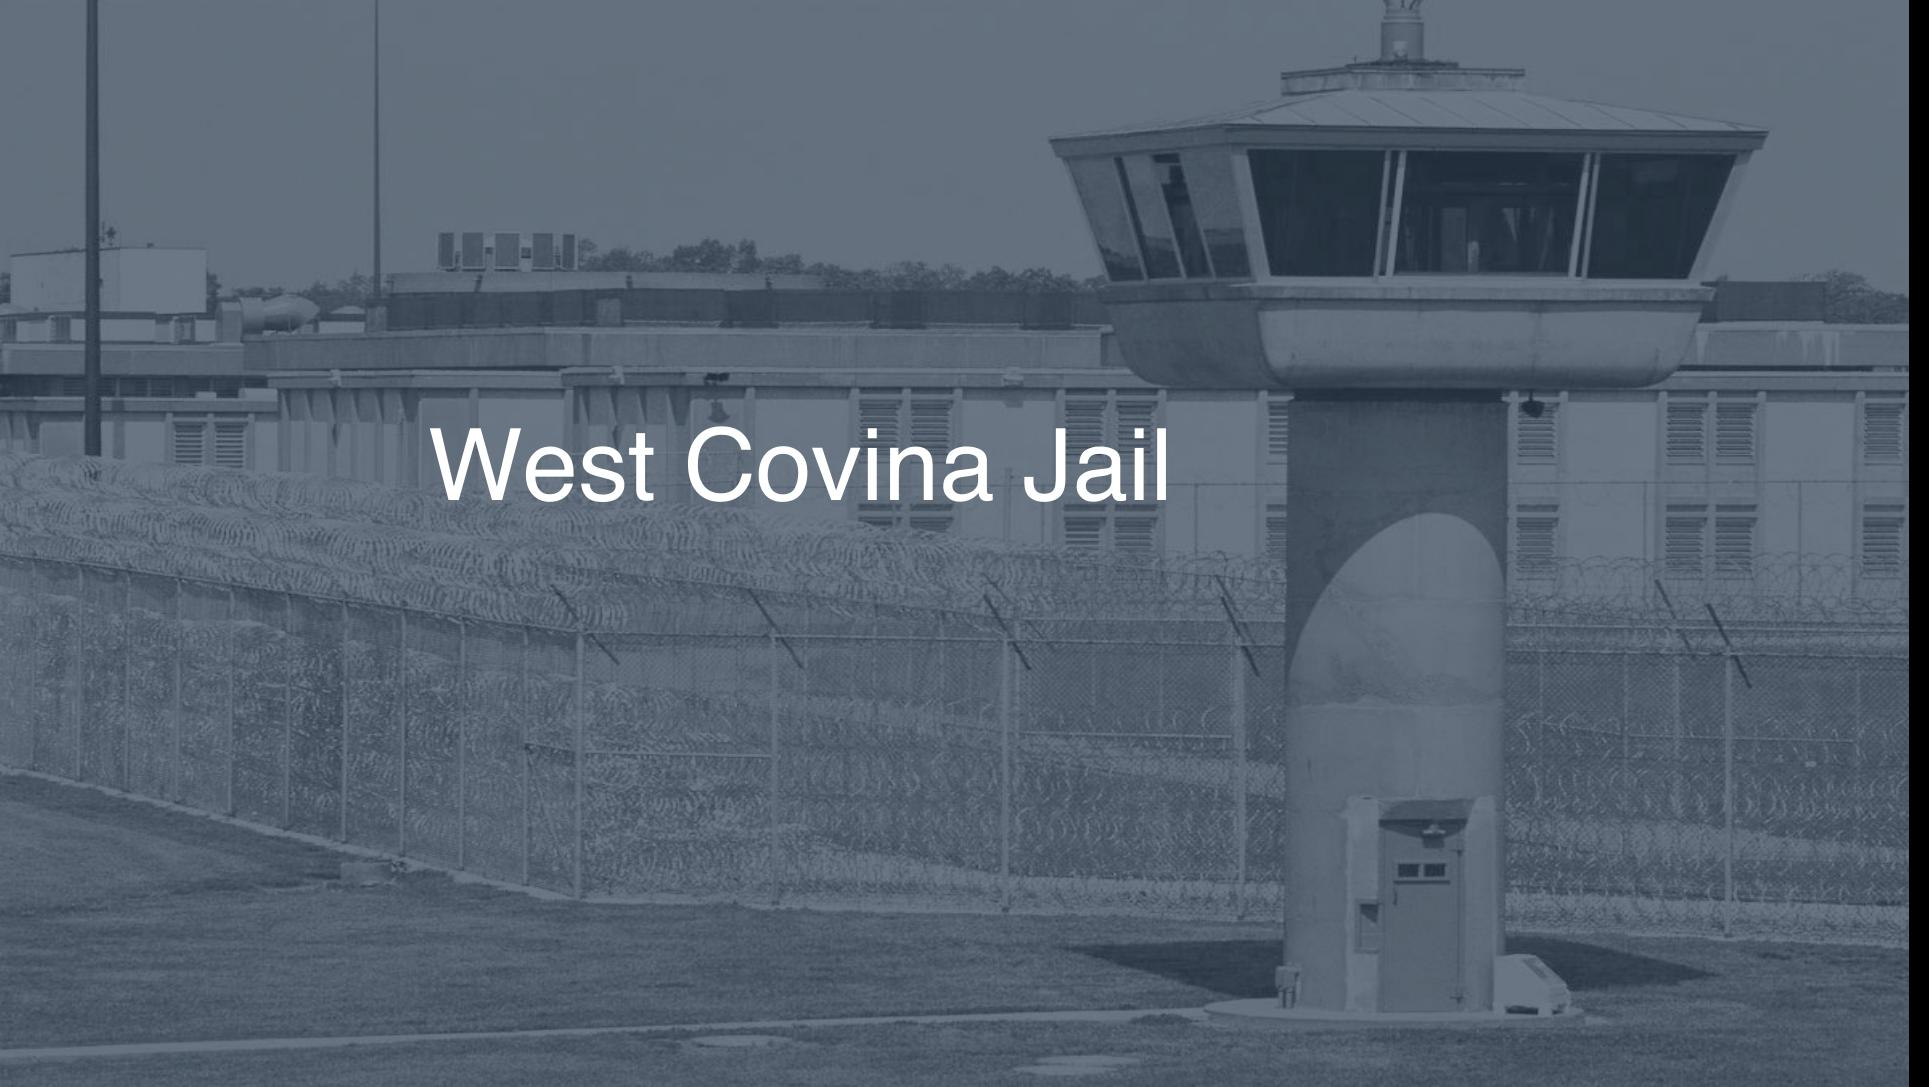 West Covina Jail | Pigeonly - Inmate Search, Locate